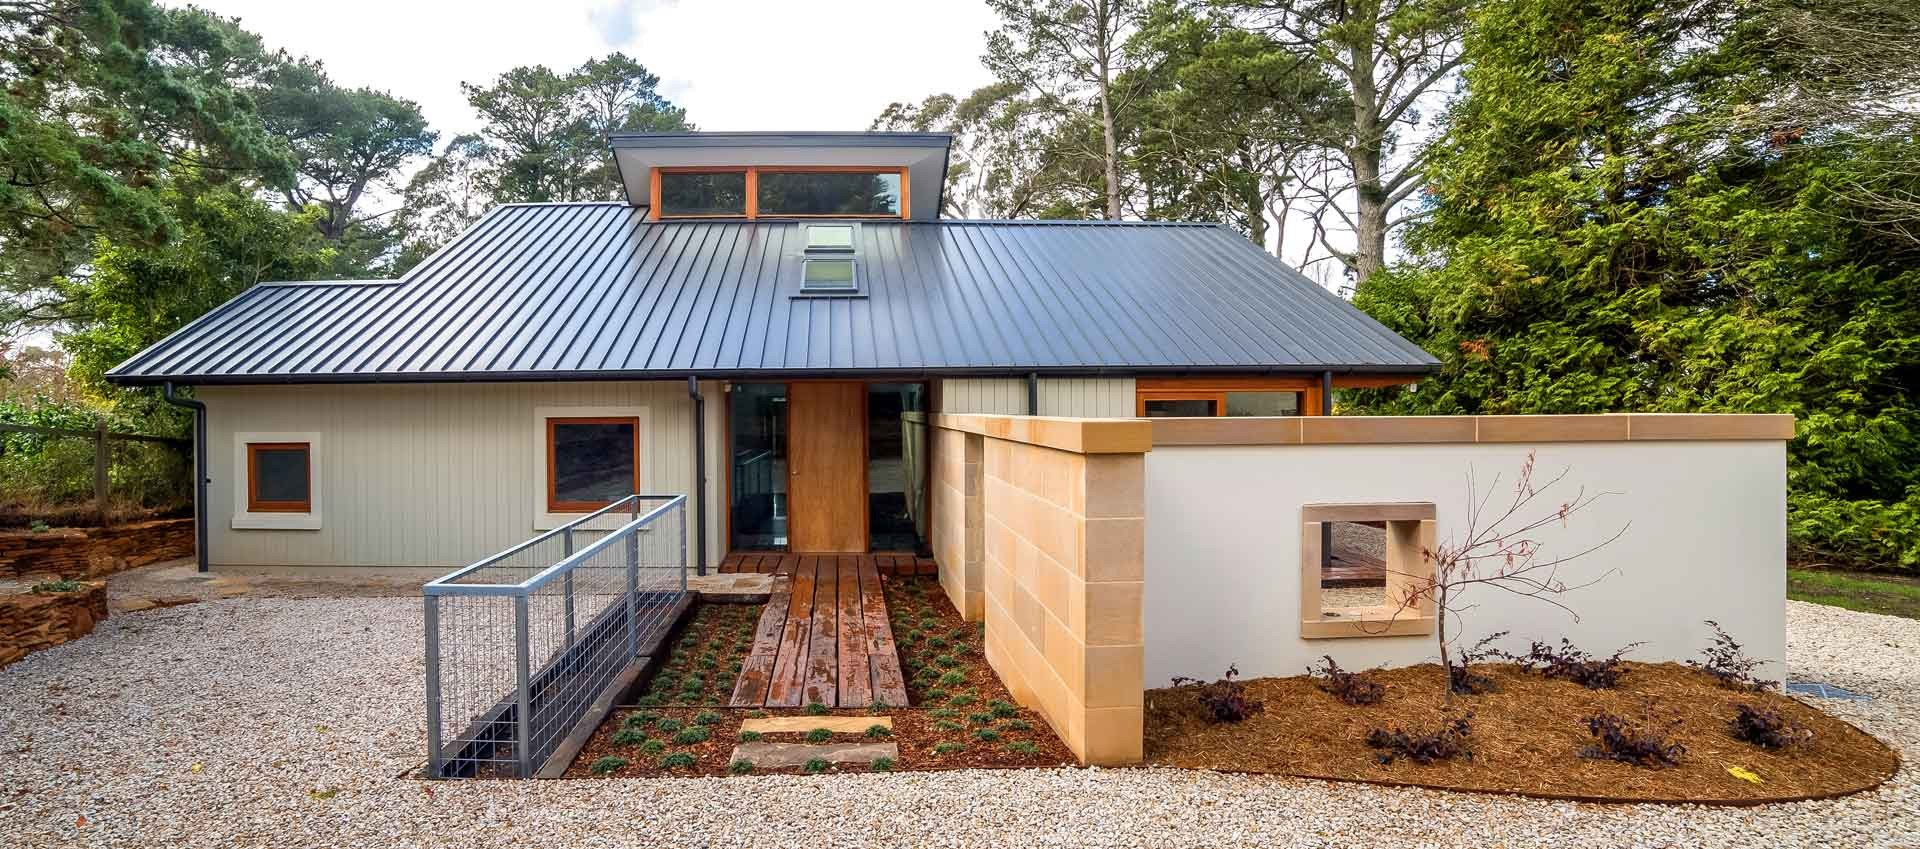 ICF concrete forms   ICF homes   Insulated Wall Panels: Zego